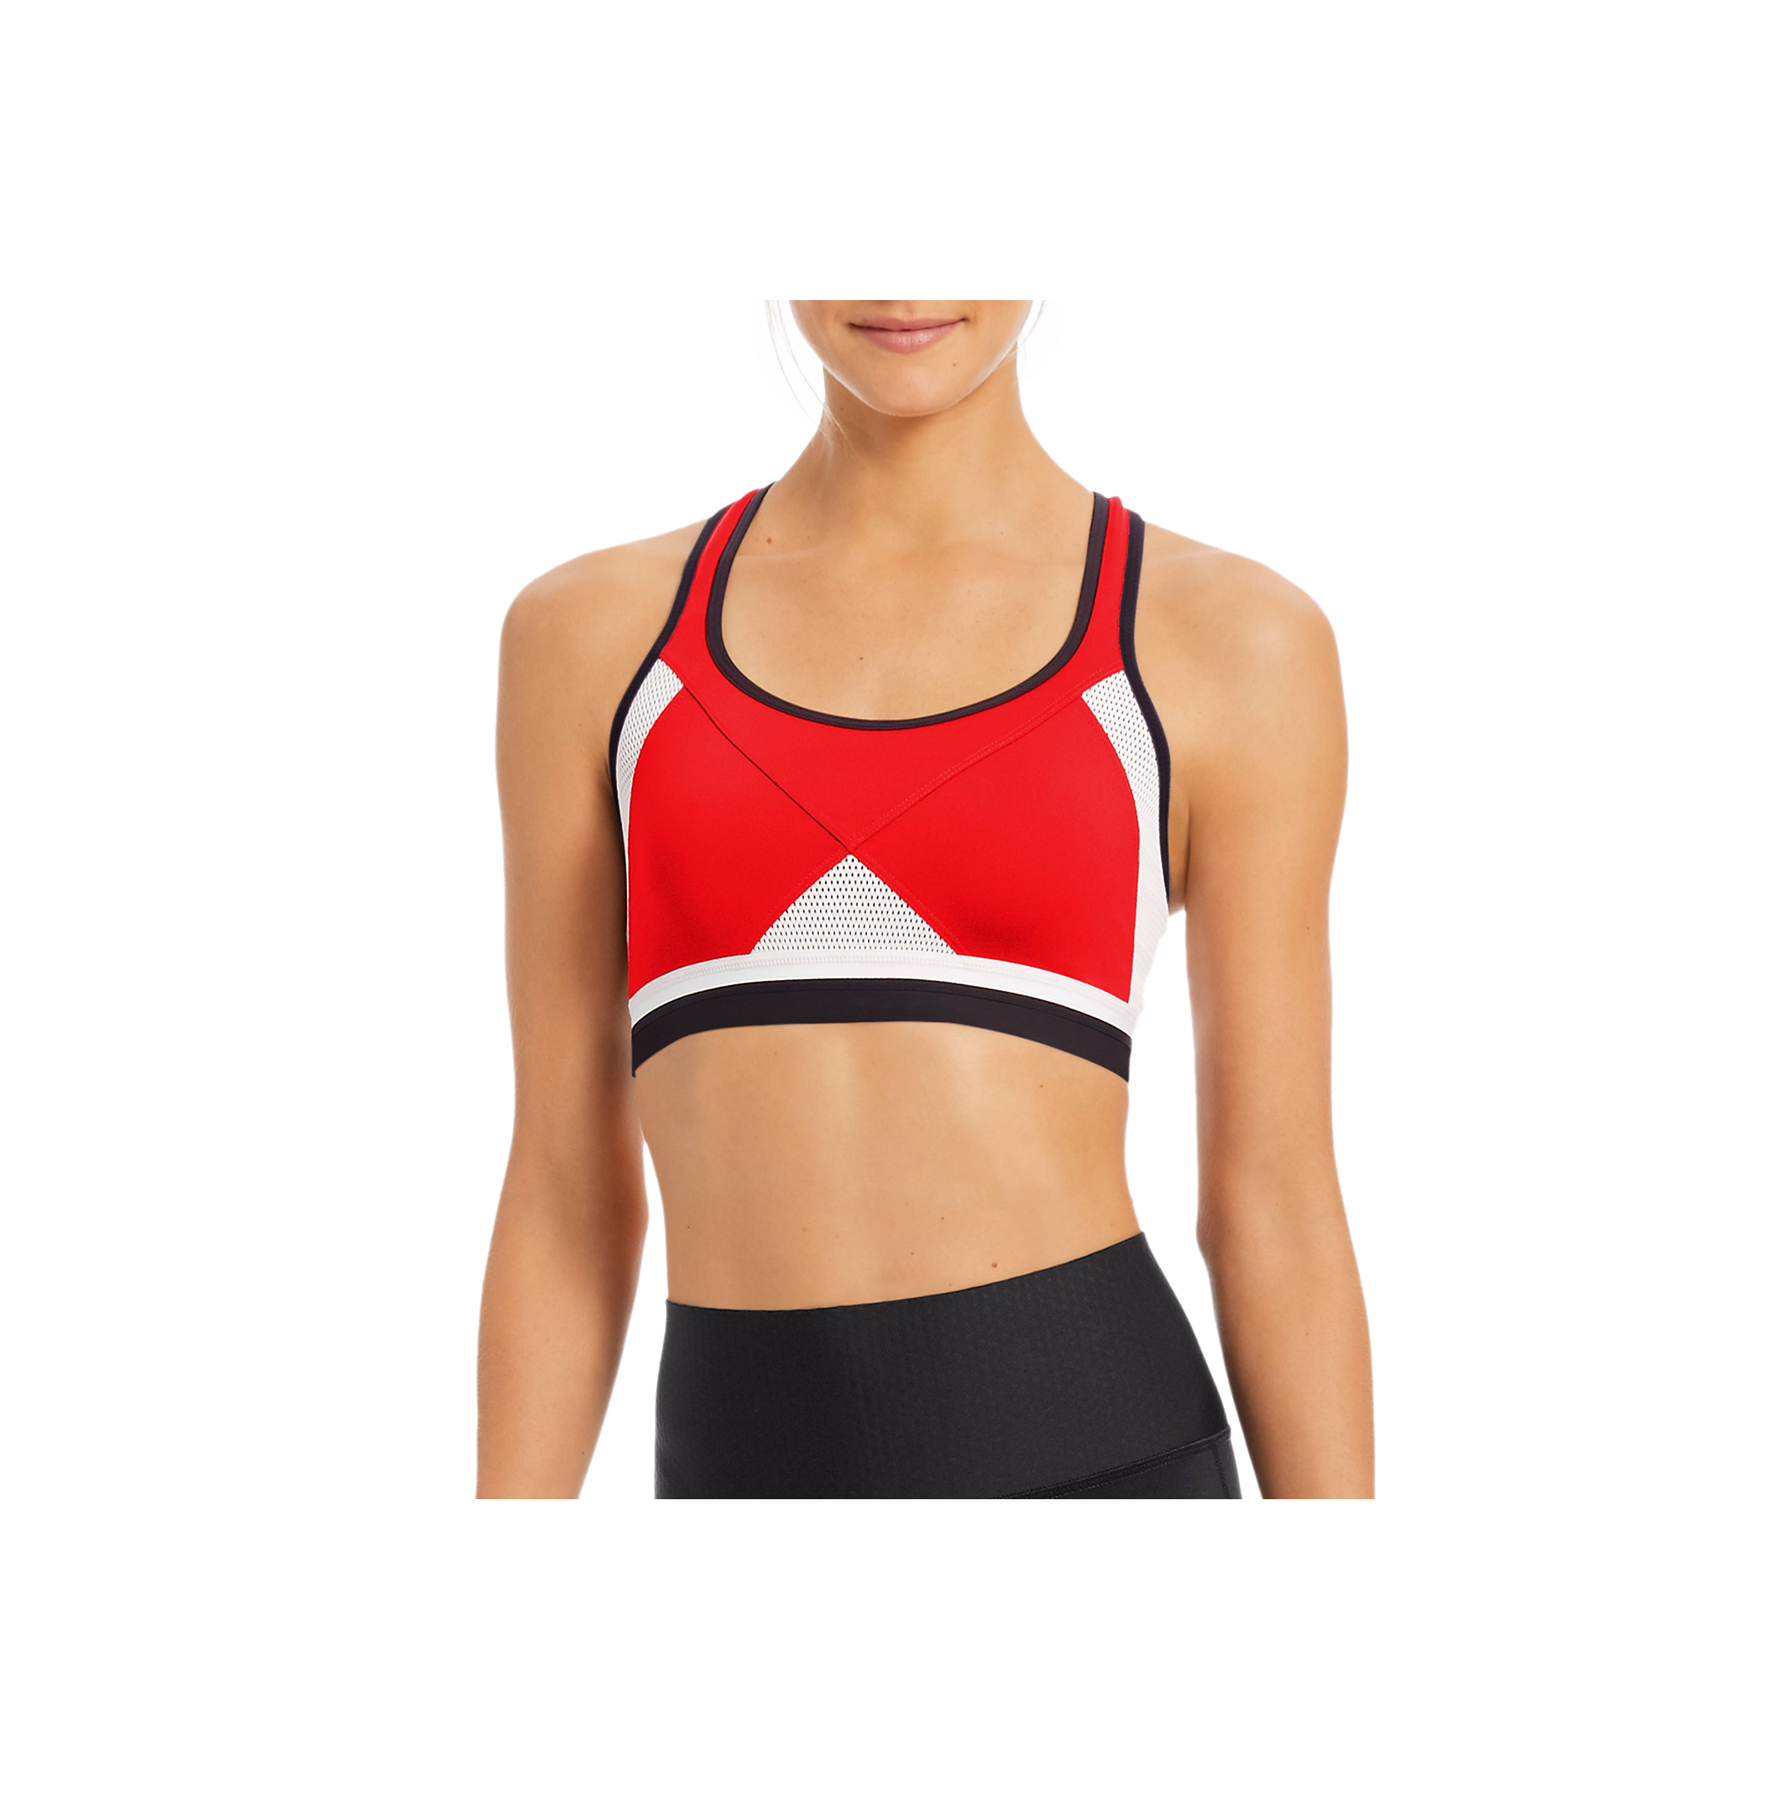 Champion The Absolute Sports Bra-40th Anniversary